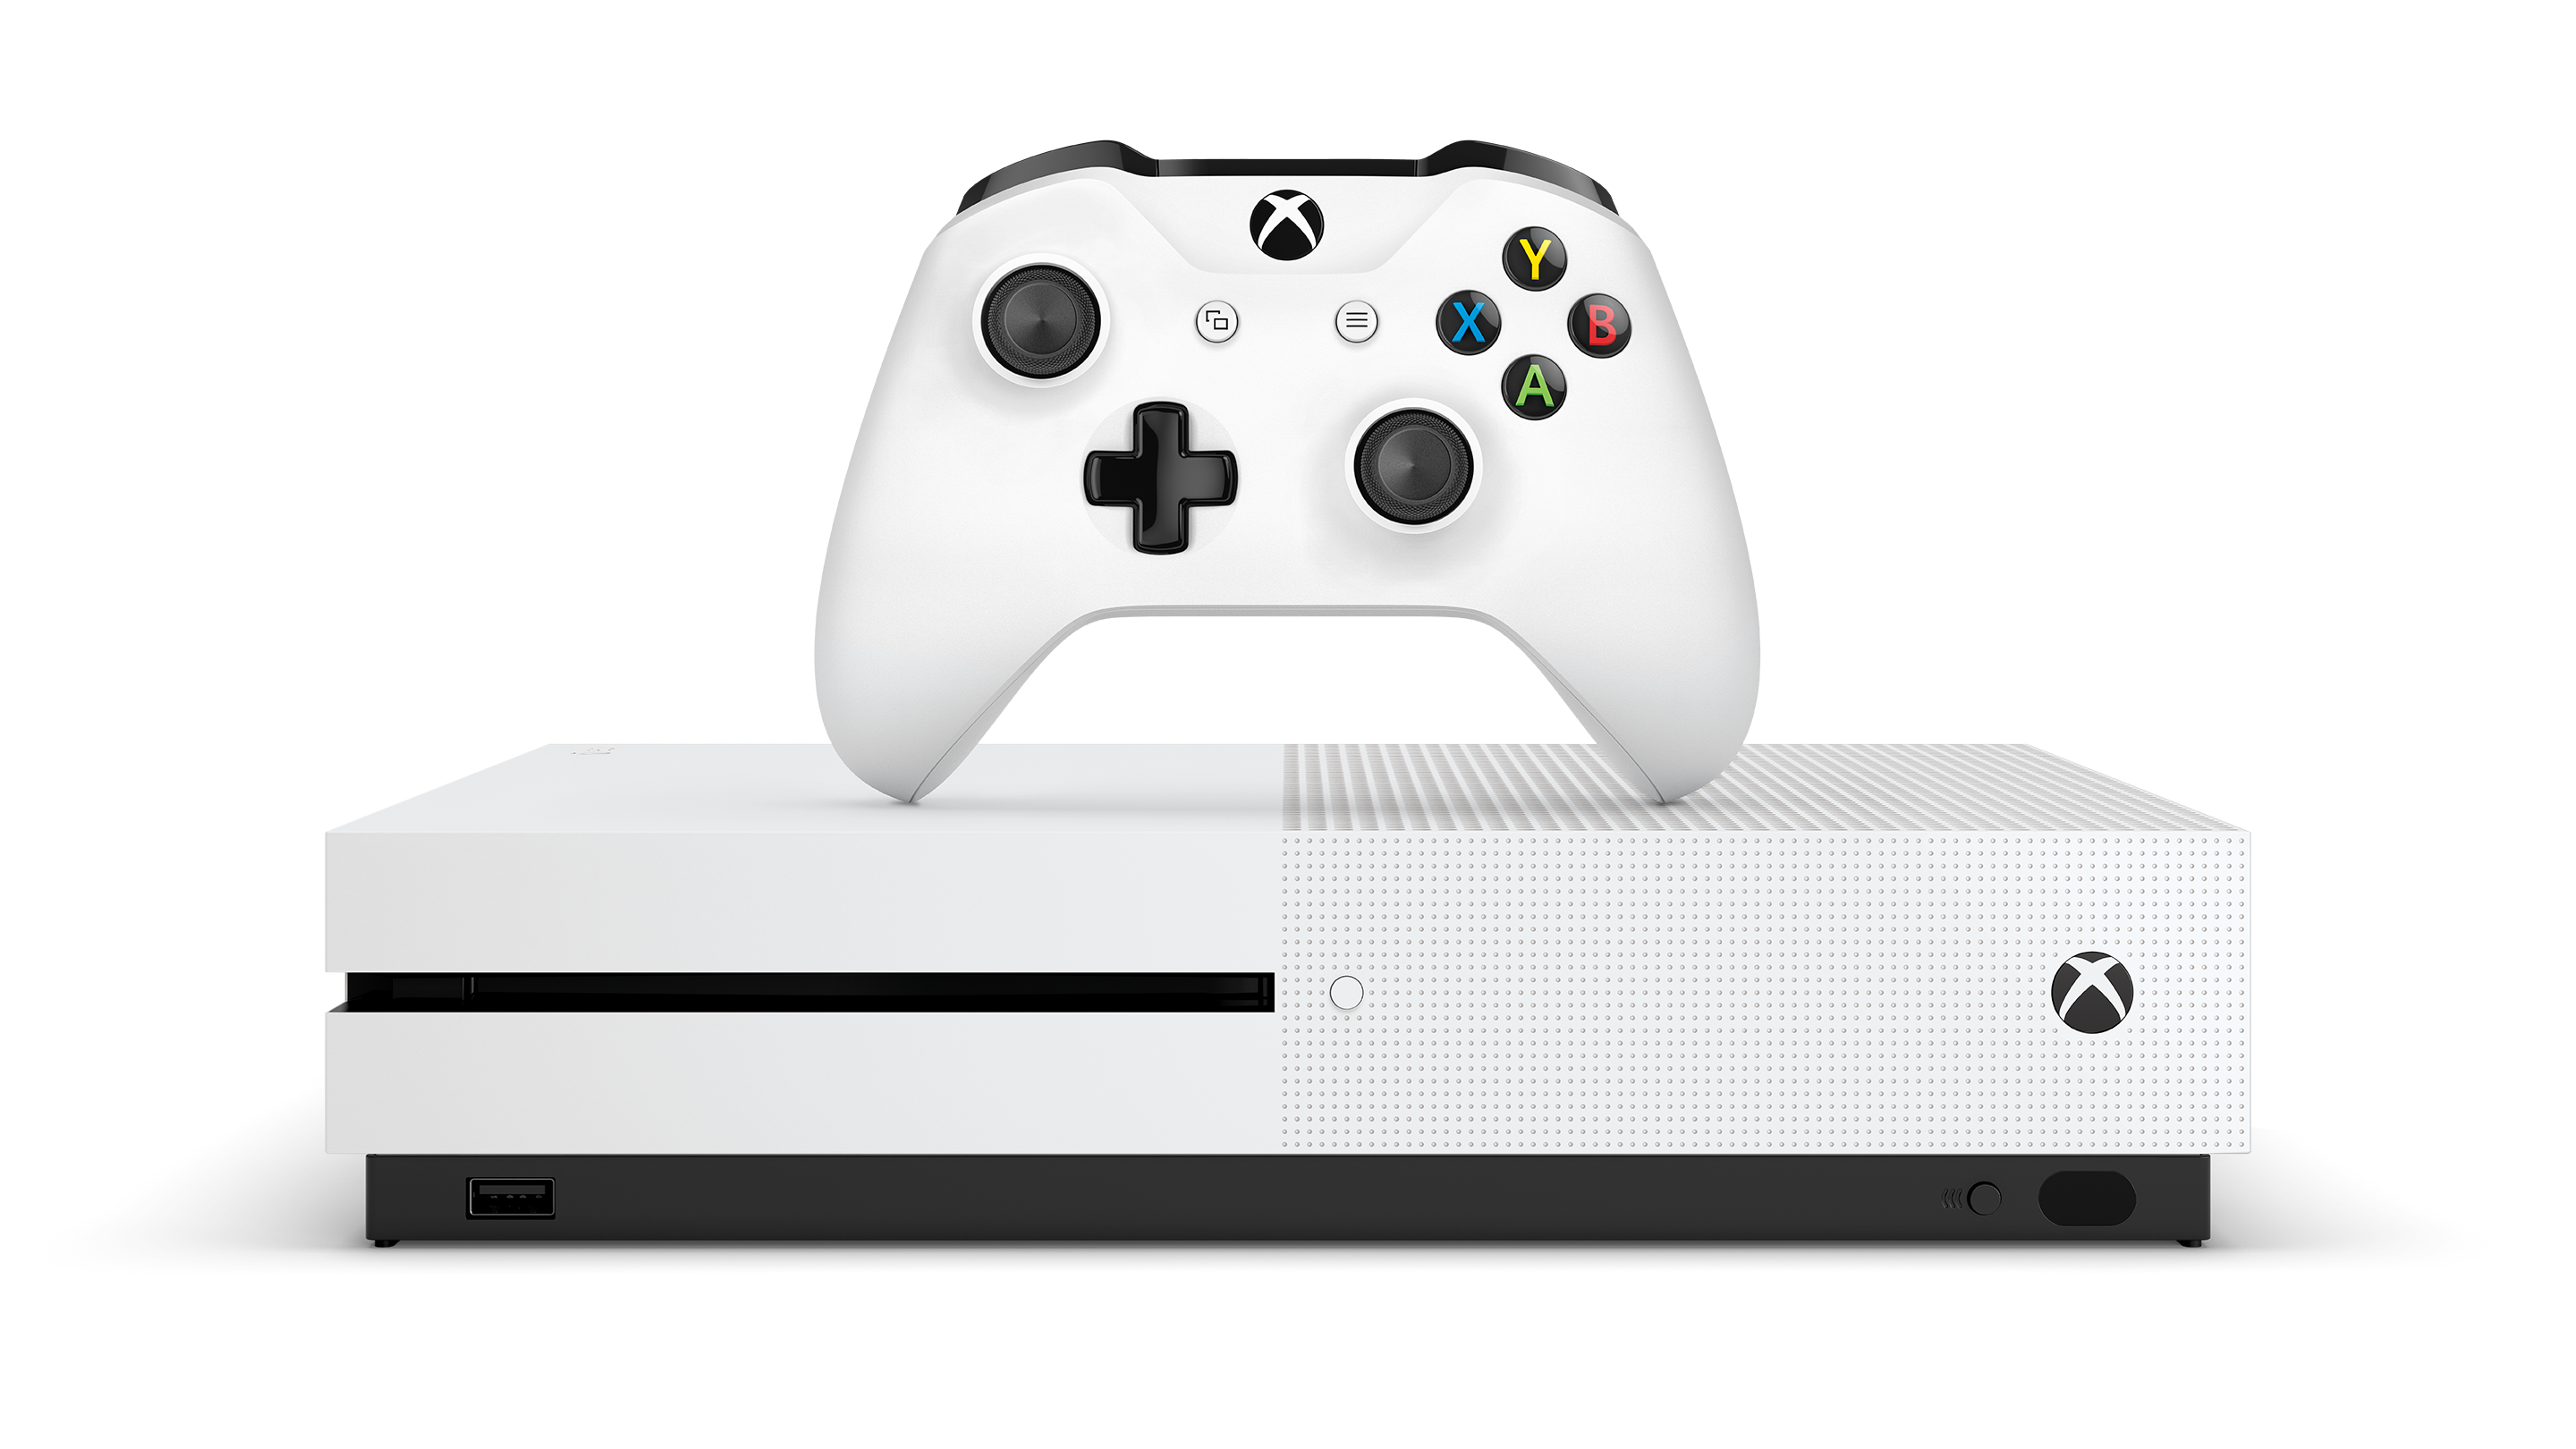 Dell Black Friday deals: Mega Xbox One S bundle for $249.99, $99 Micro and laptop